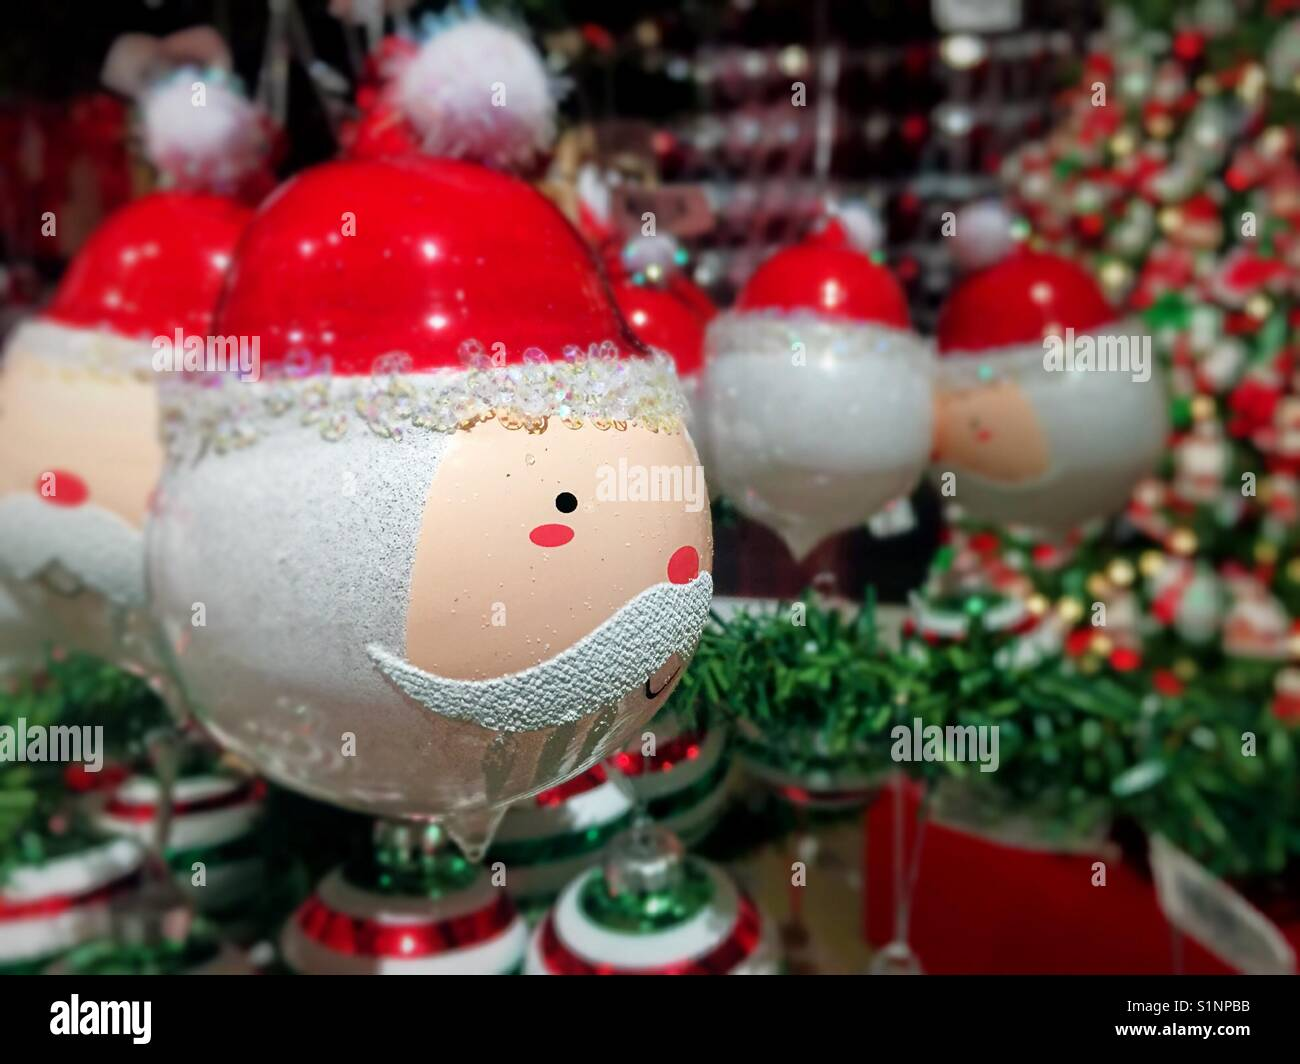 Whimsical Christmas Ornaments.Whimsical Santa Head Christmas Ornaments On Display At